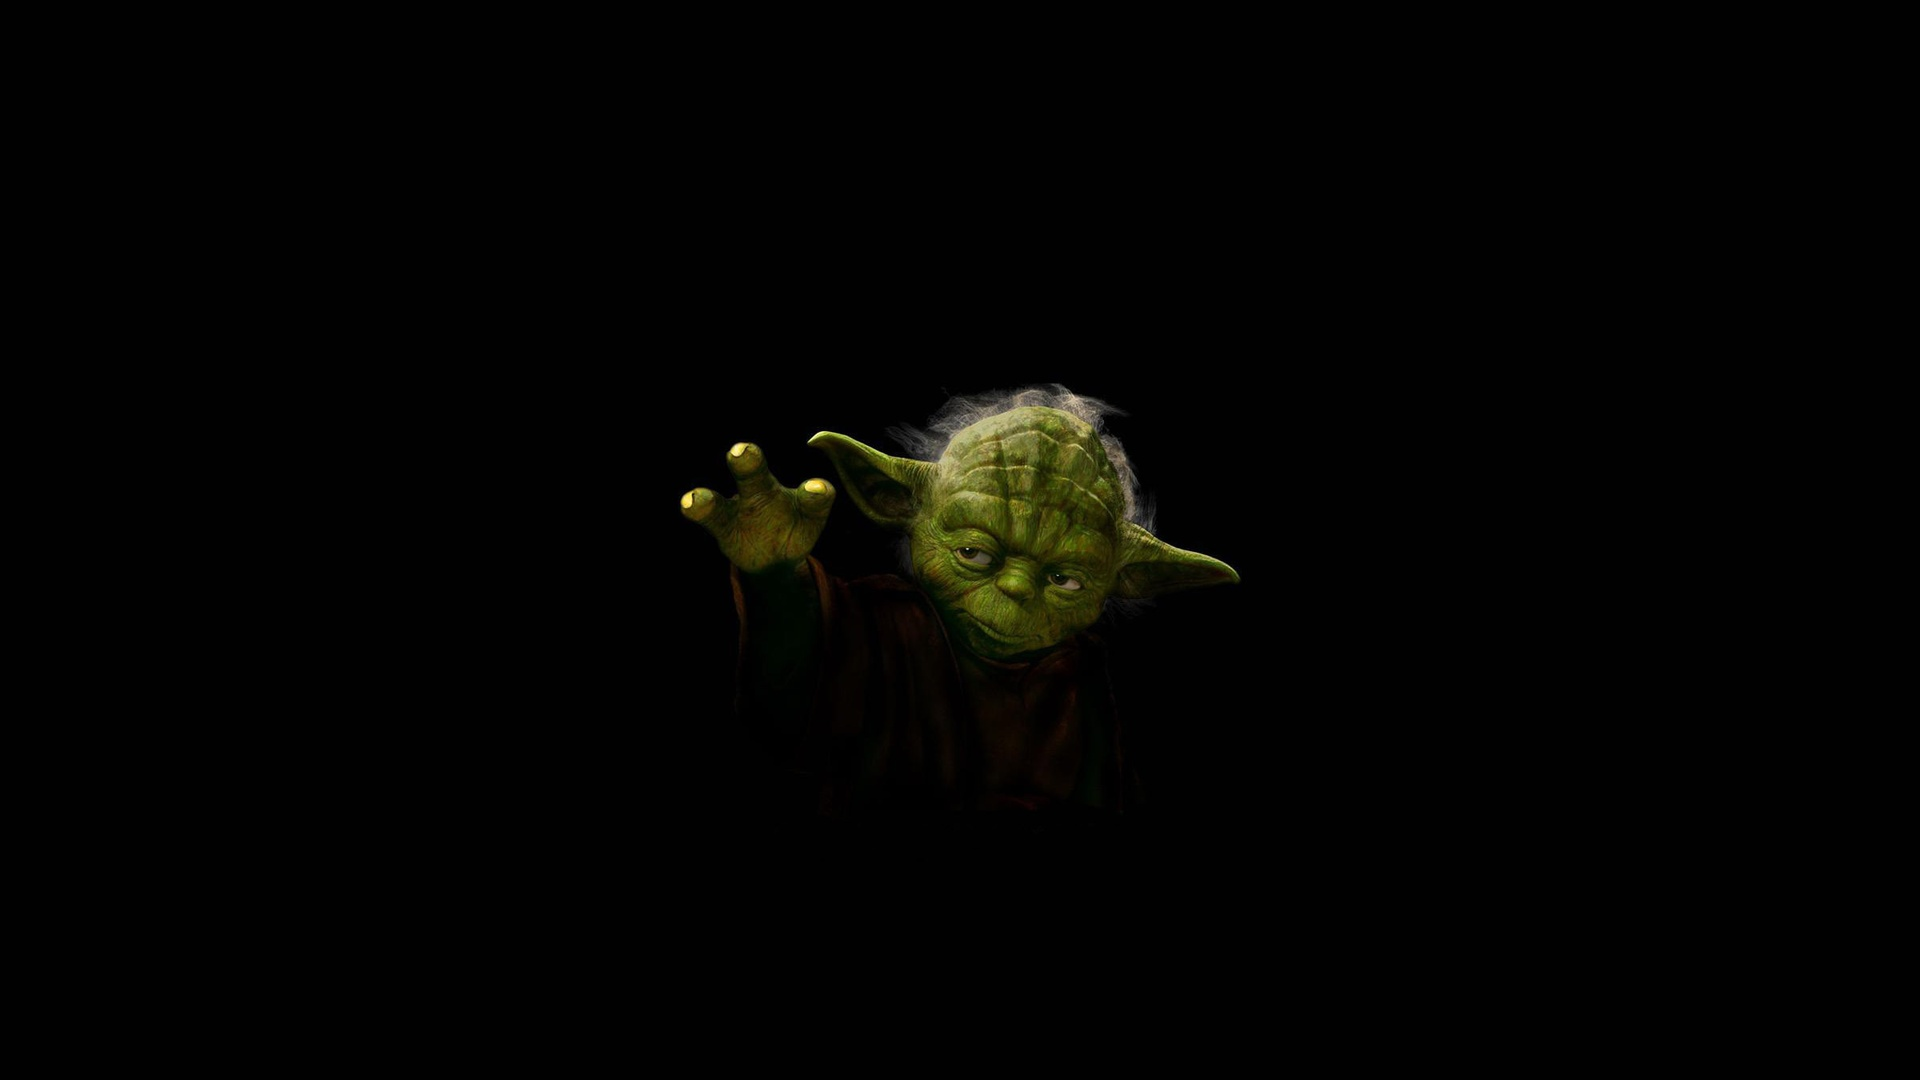 Iphone wallpaper yoda - 8 Best Star Wars Images On Pinterest Star Wars Wallpaper Wallpaper Pictures And Clone Wars